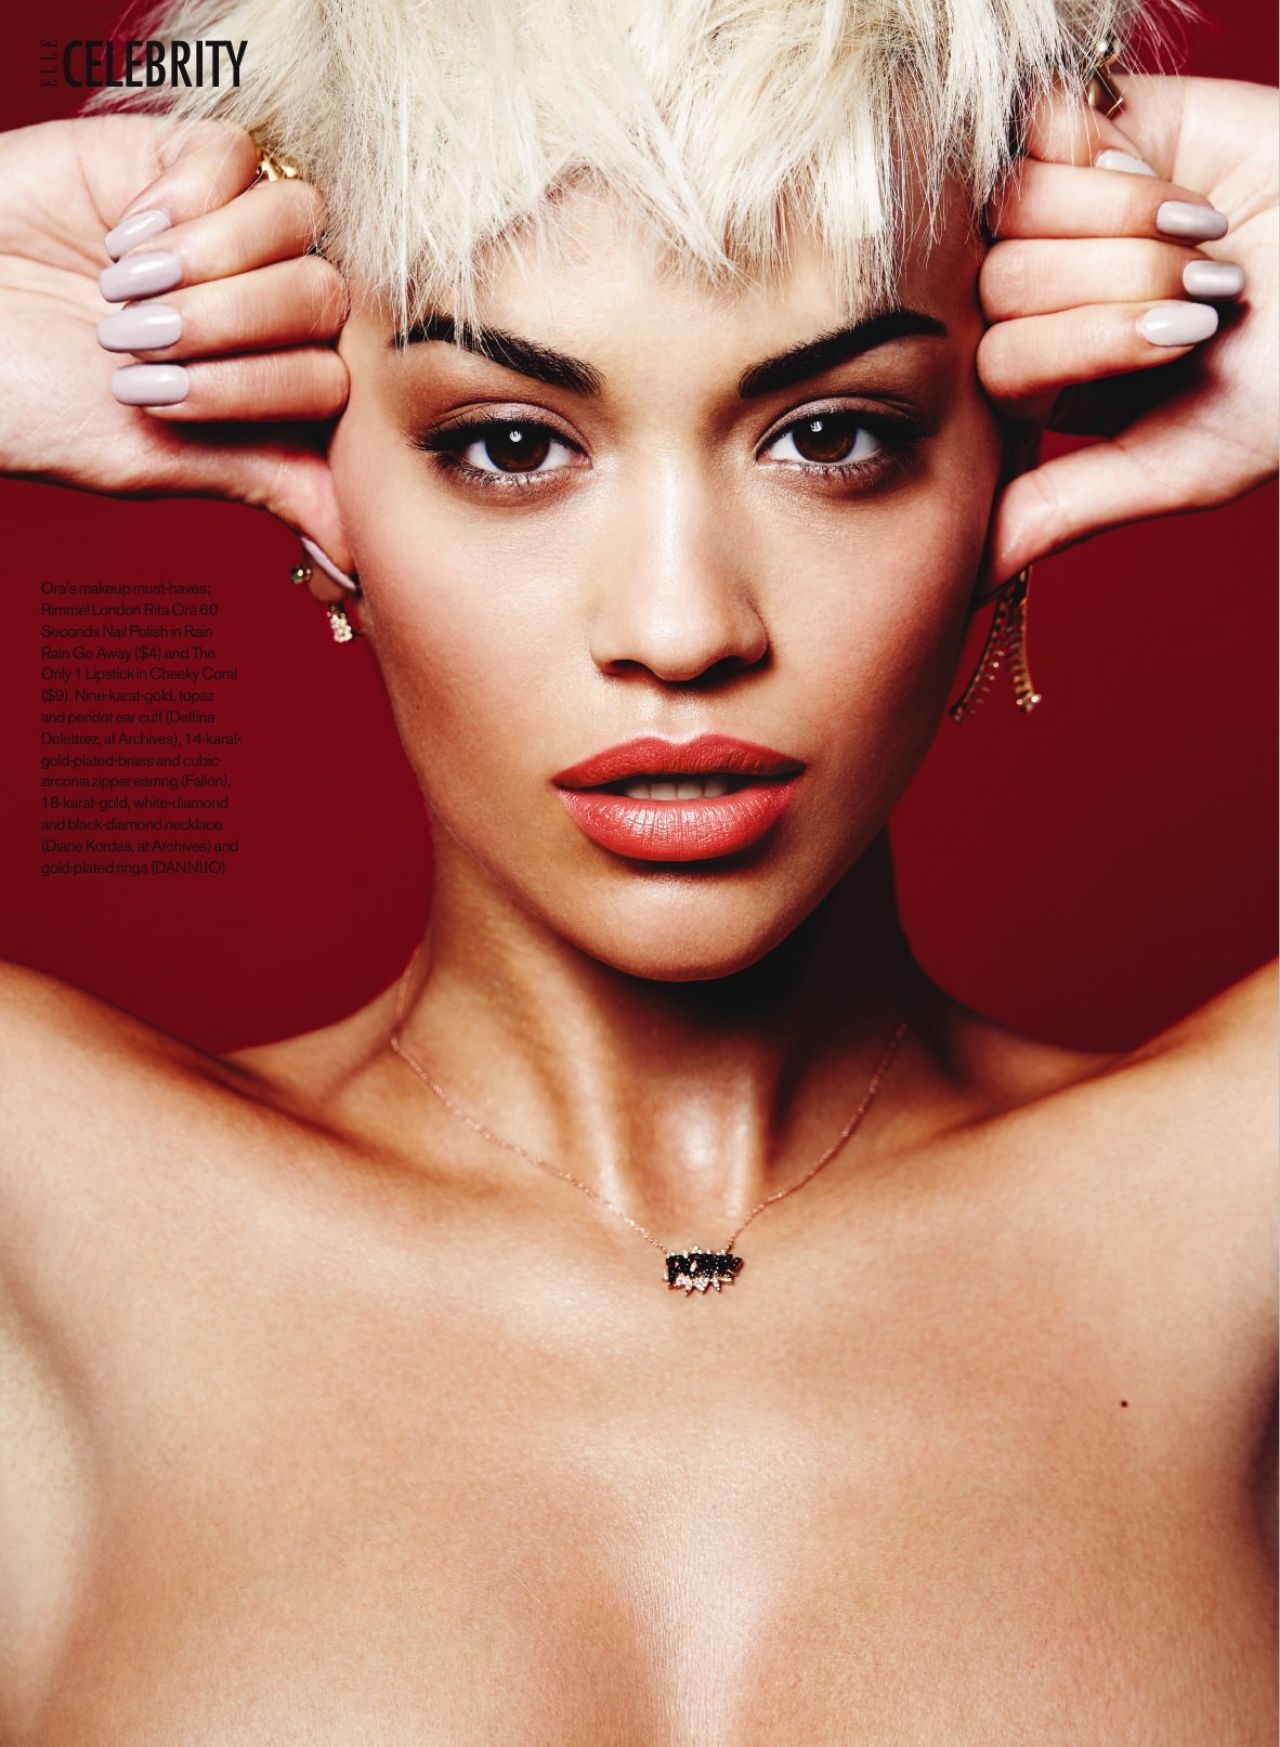 Rita Ora Elle Magazine Canada February 2016 Issue